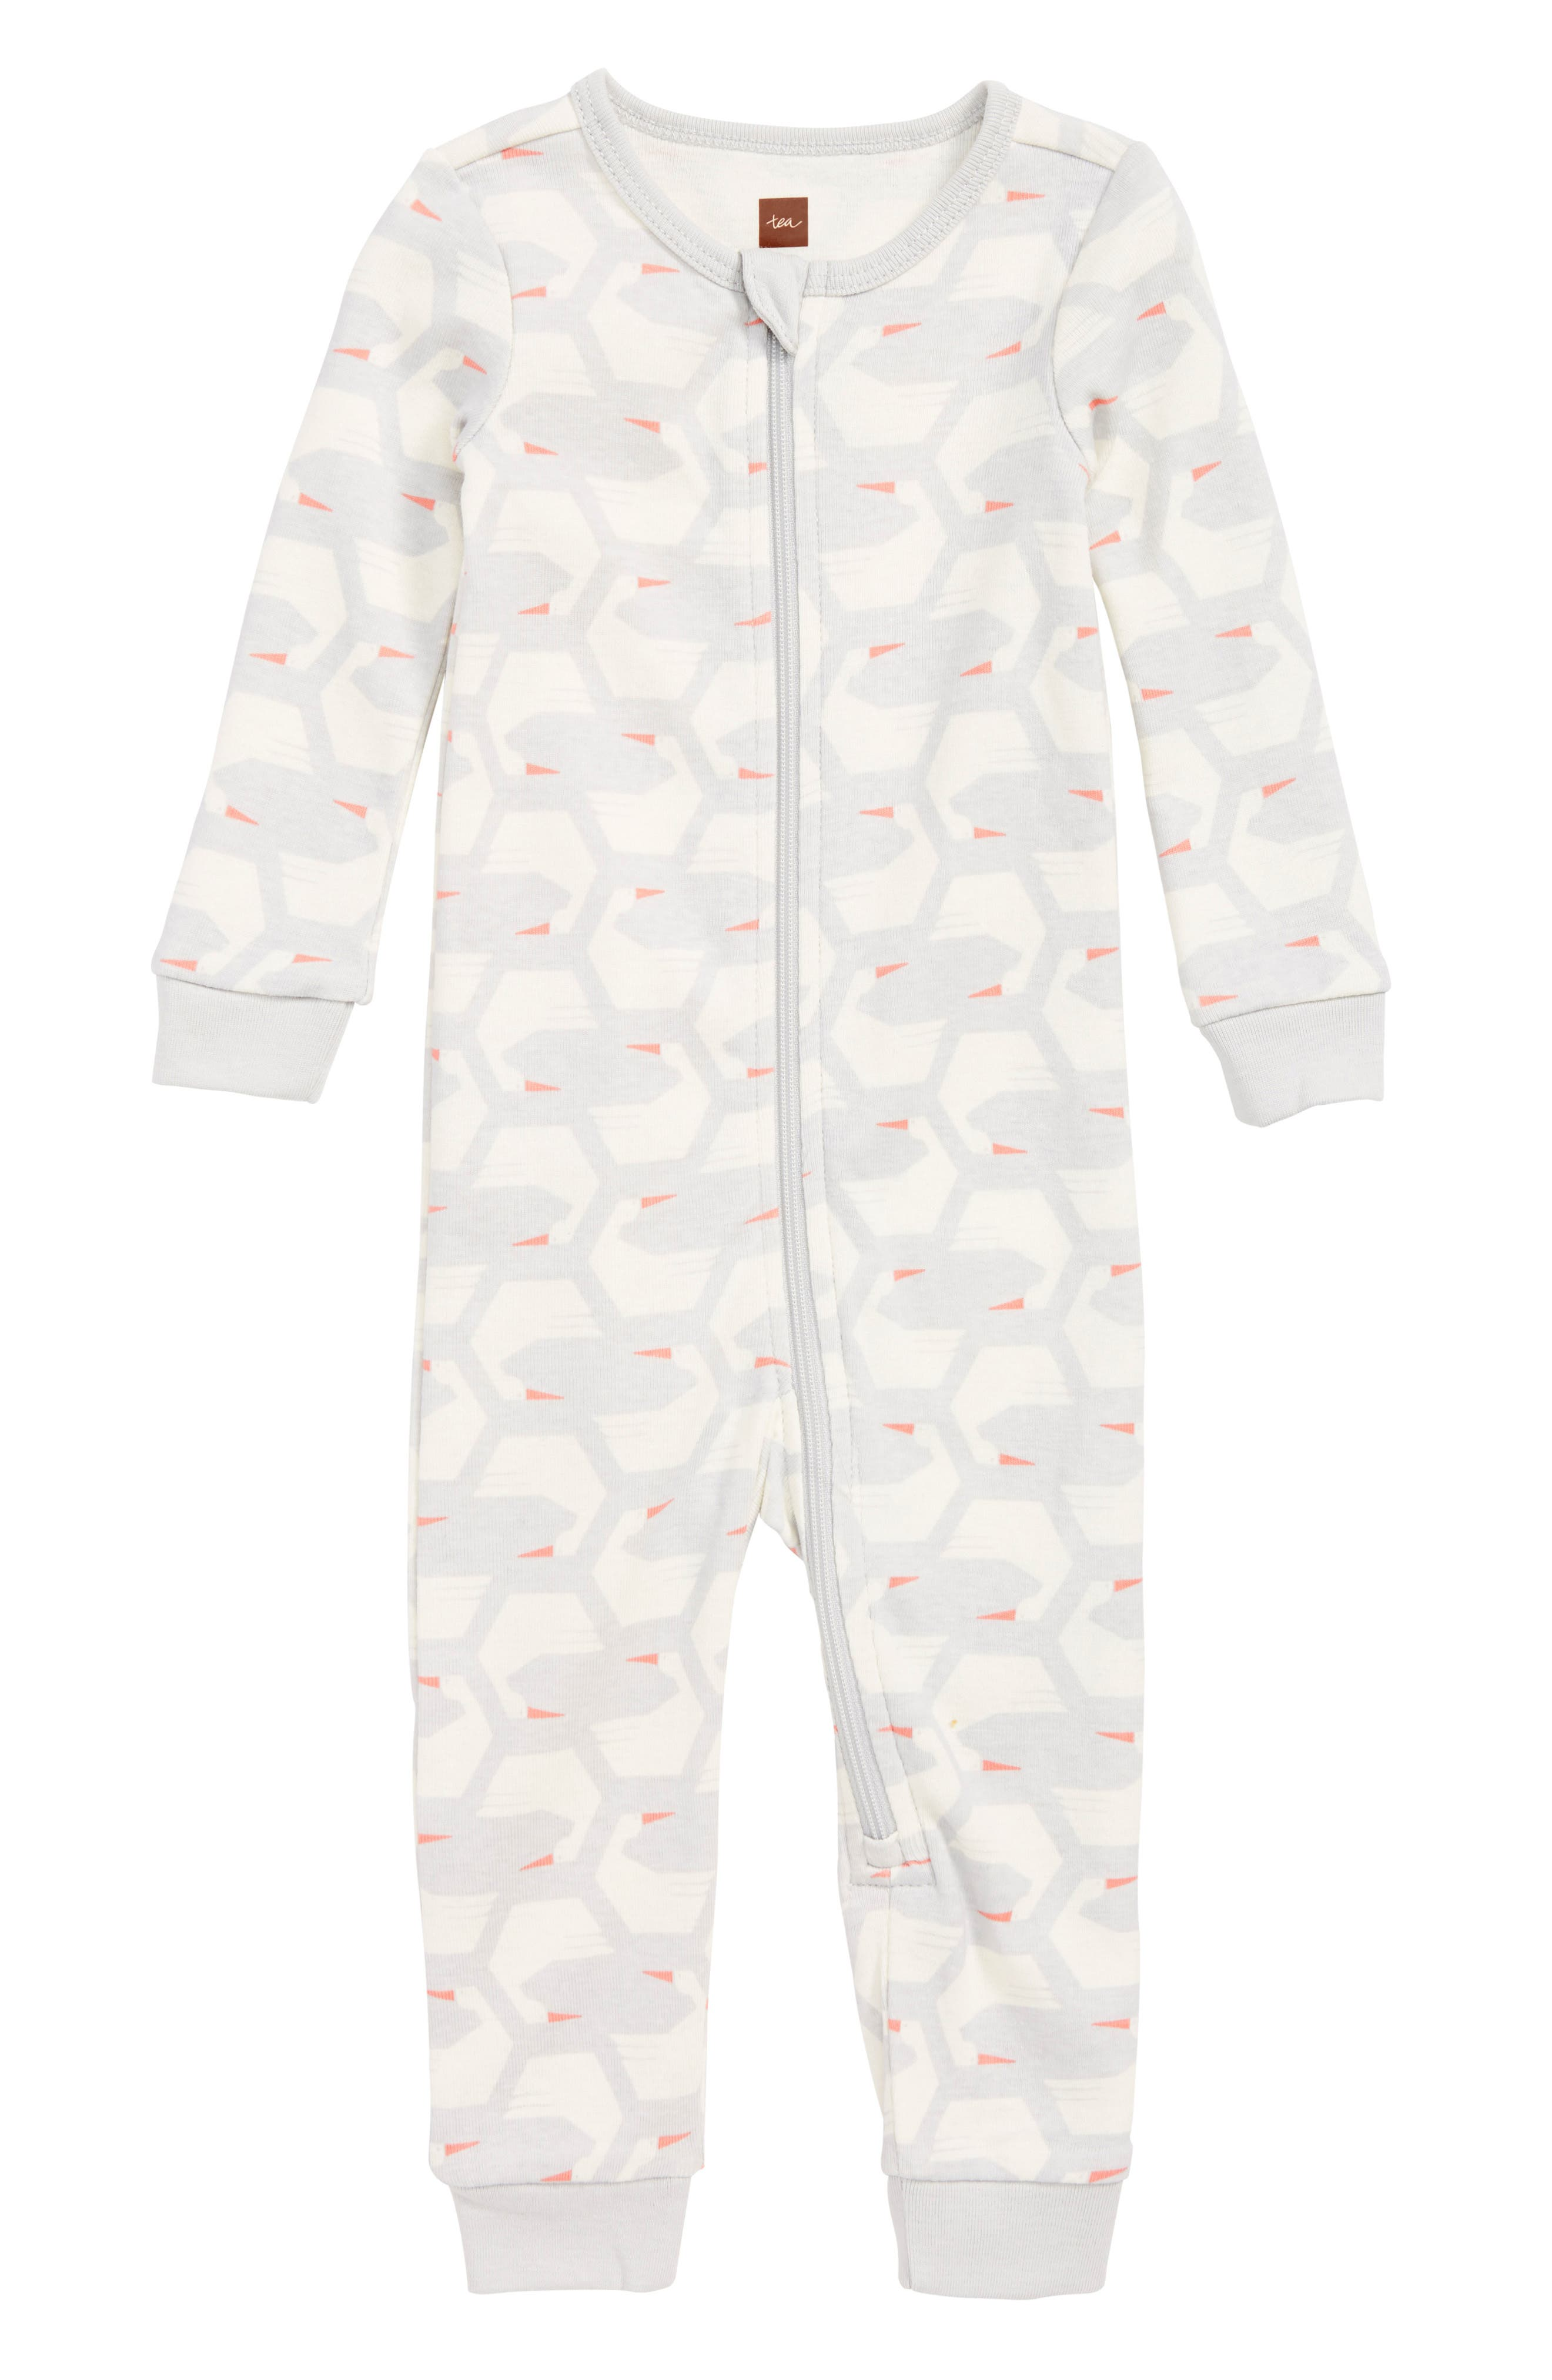 Fitted One-Piece Pajamas,                             Main thumbnail 1, color,                             FLOCK OF SWANS